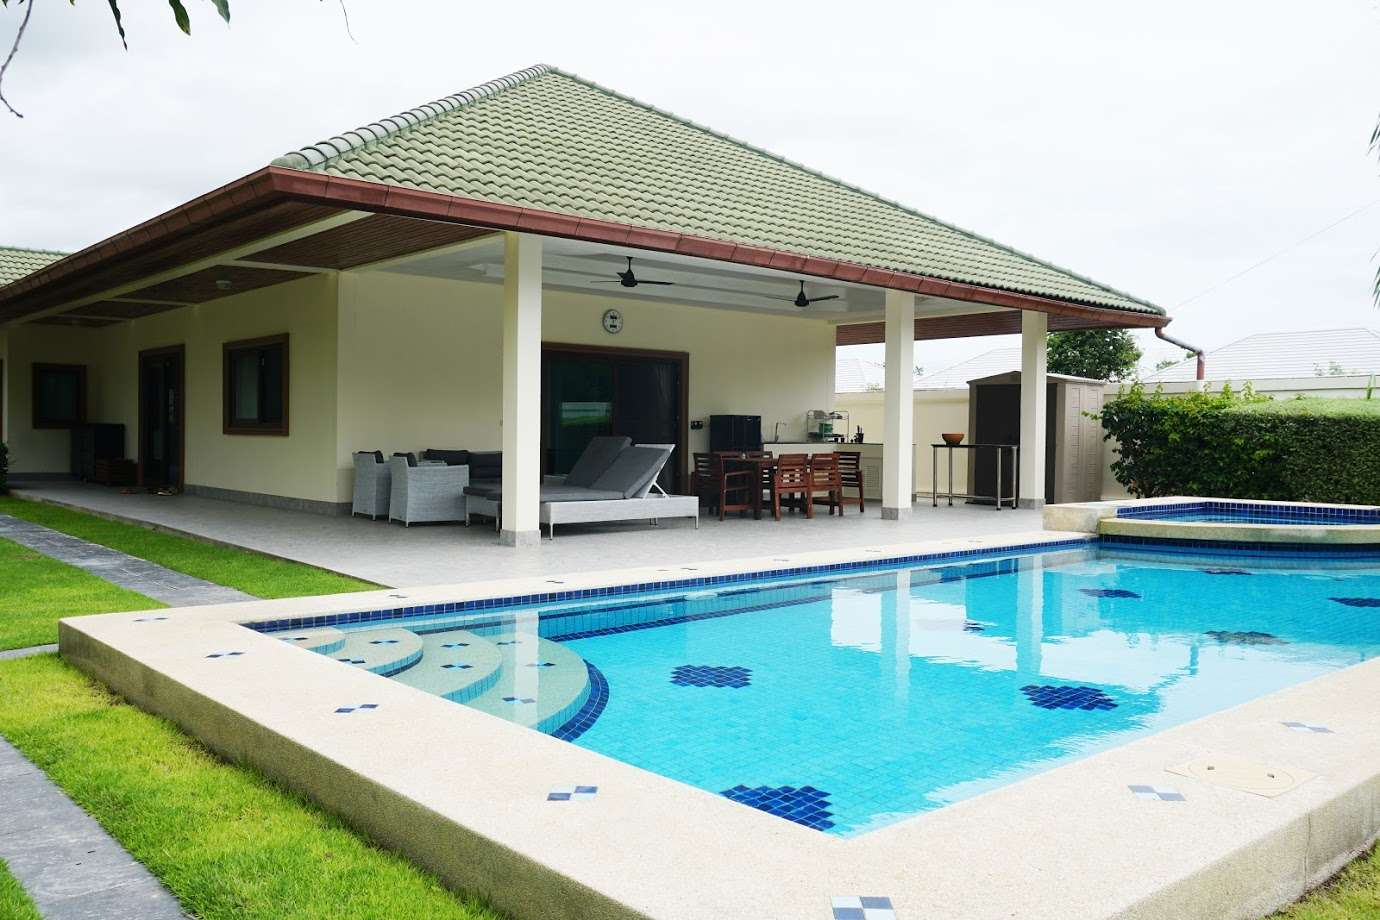 3 Bedroom Pool Villa in Coconut Garden at Hua Hin District, Prachuap Khiri Khan, Thailand